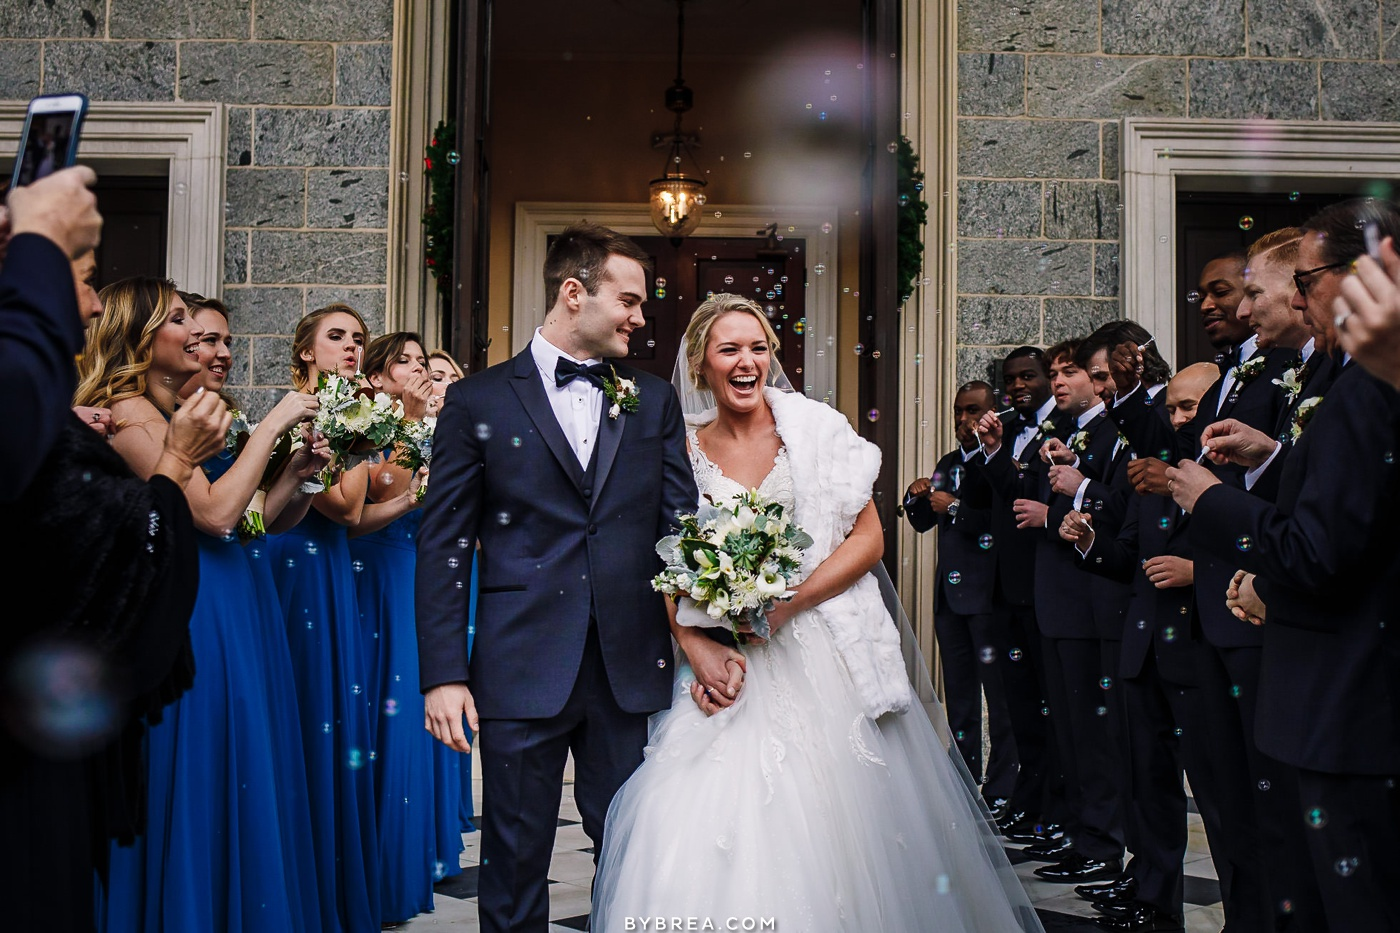 Photo of bubble exit during wedding ceremony at Basilica in Baltimore